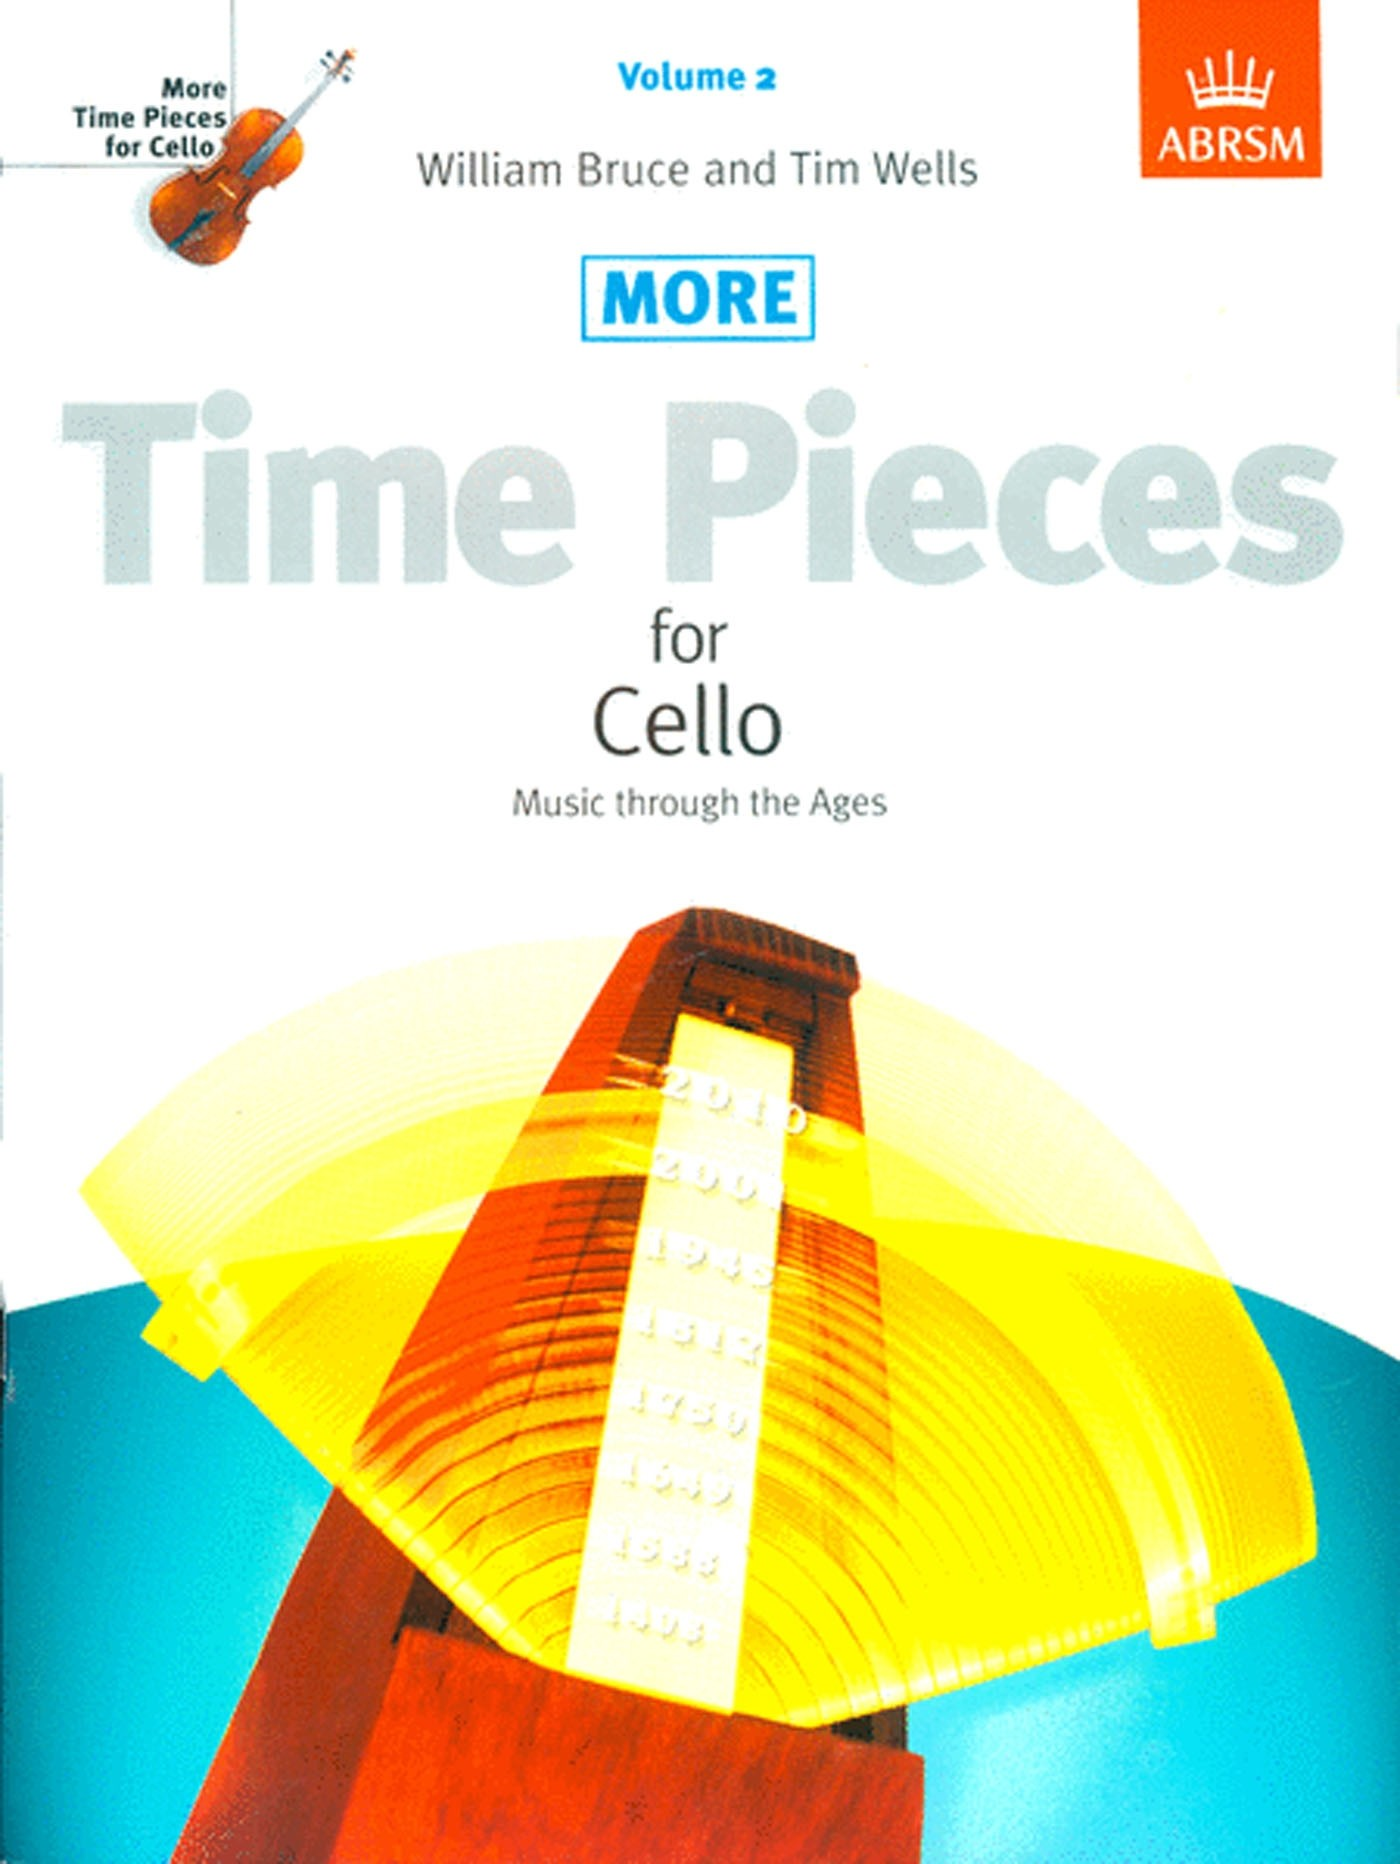 More Time Pieces For Cello Volume 2 Book Piano Part ABRSM Bruce & Wells S147